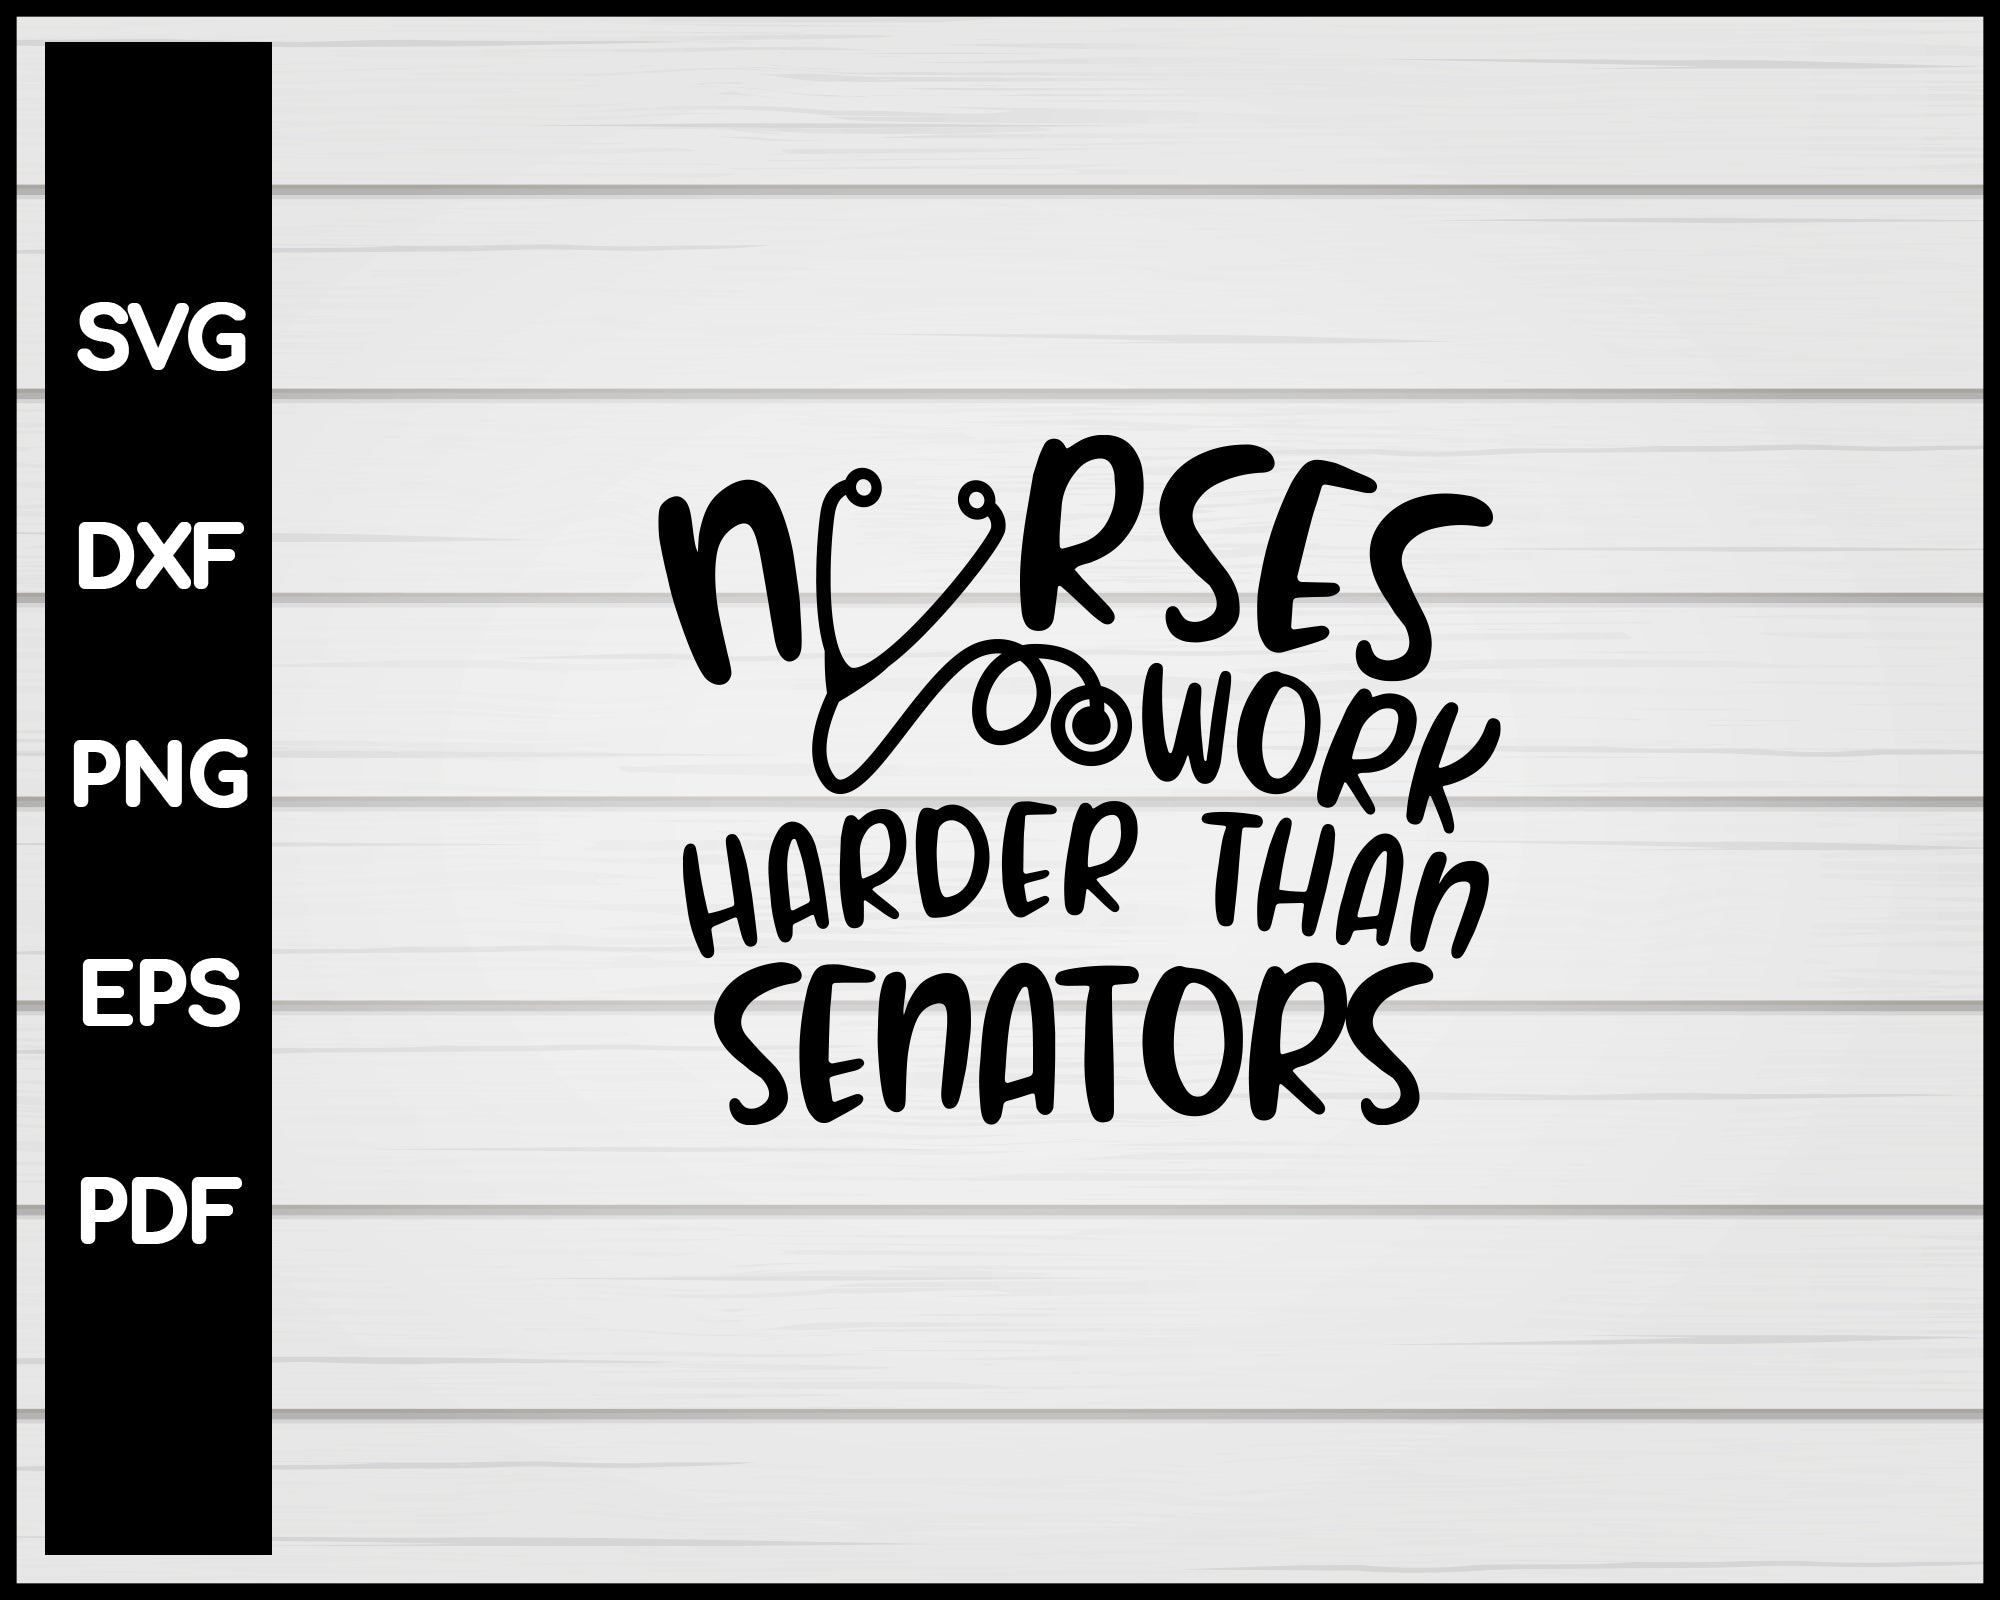 Nurses Work Harder Than Senators svg Cut File For Cricut Silhouette eps png dxf Printable Files